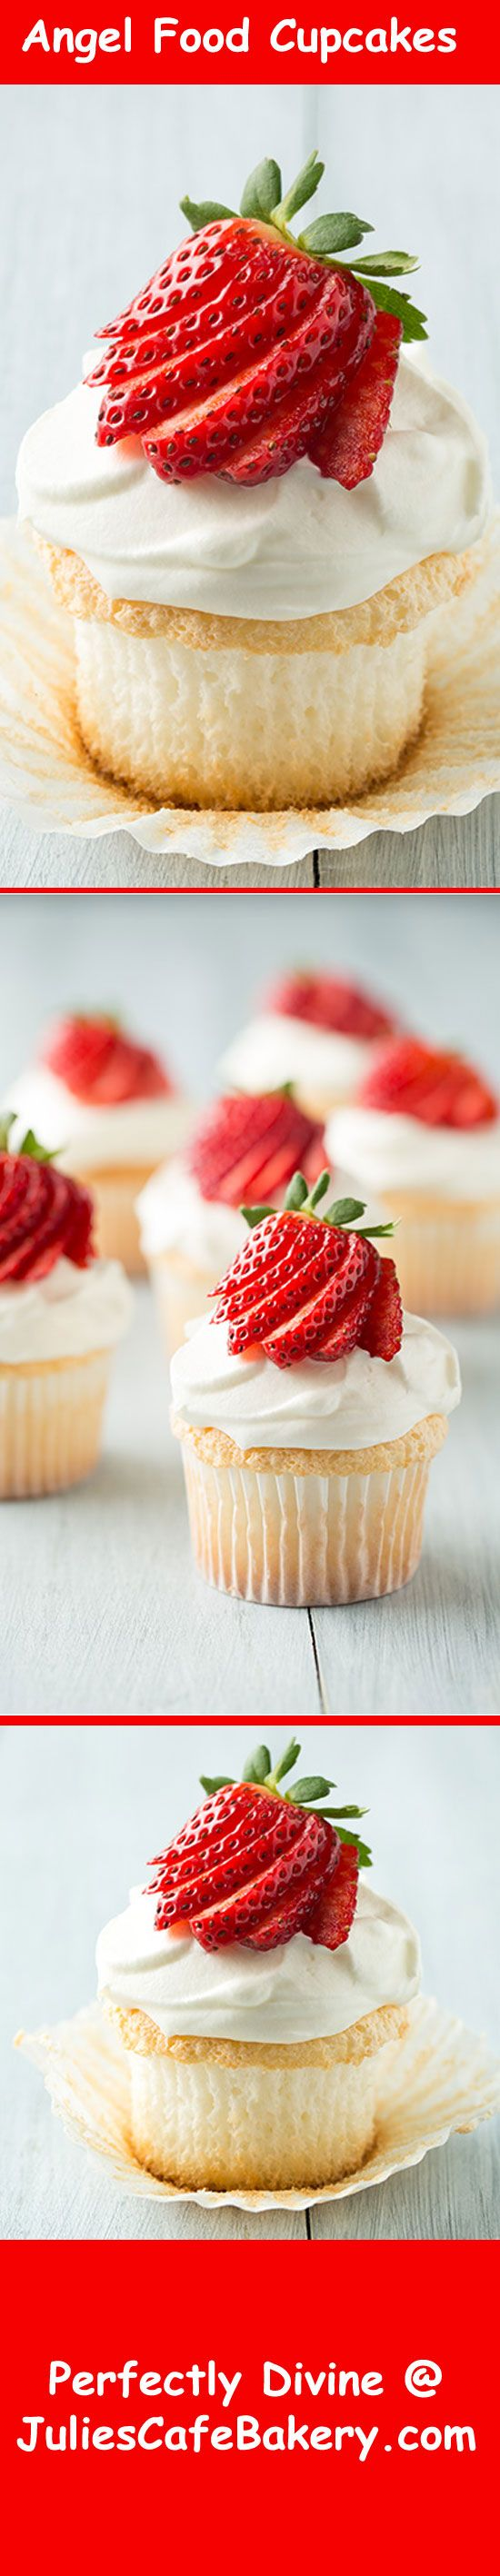 Perfect Angel Food Cupcakes WOW @ http://JuliesCafebakery.com #cupcakes #recipes #love 3/4 cup and 2 Tbsp of granulated sugar 1/2 cup of good cake flour 1/4 teaspoon of sea salt 6 large egg whites 2 1/2 Tablespoons of luke warm water 1/2 teaspoon of vanilla, almond, orange or coconut extract 3/4 teaspoon of cream of tartar